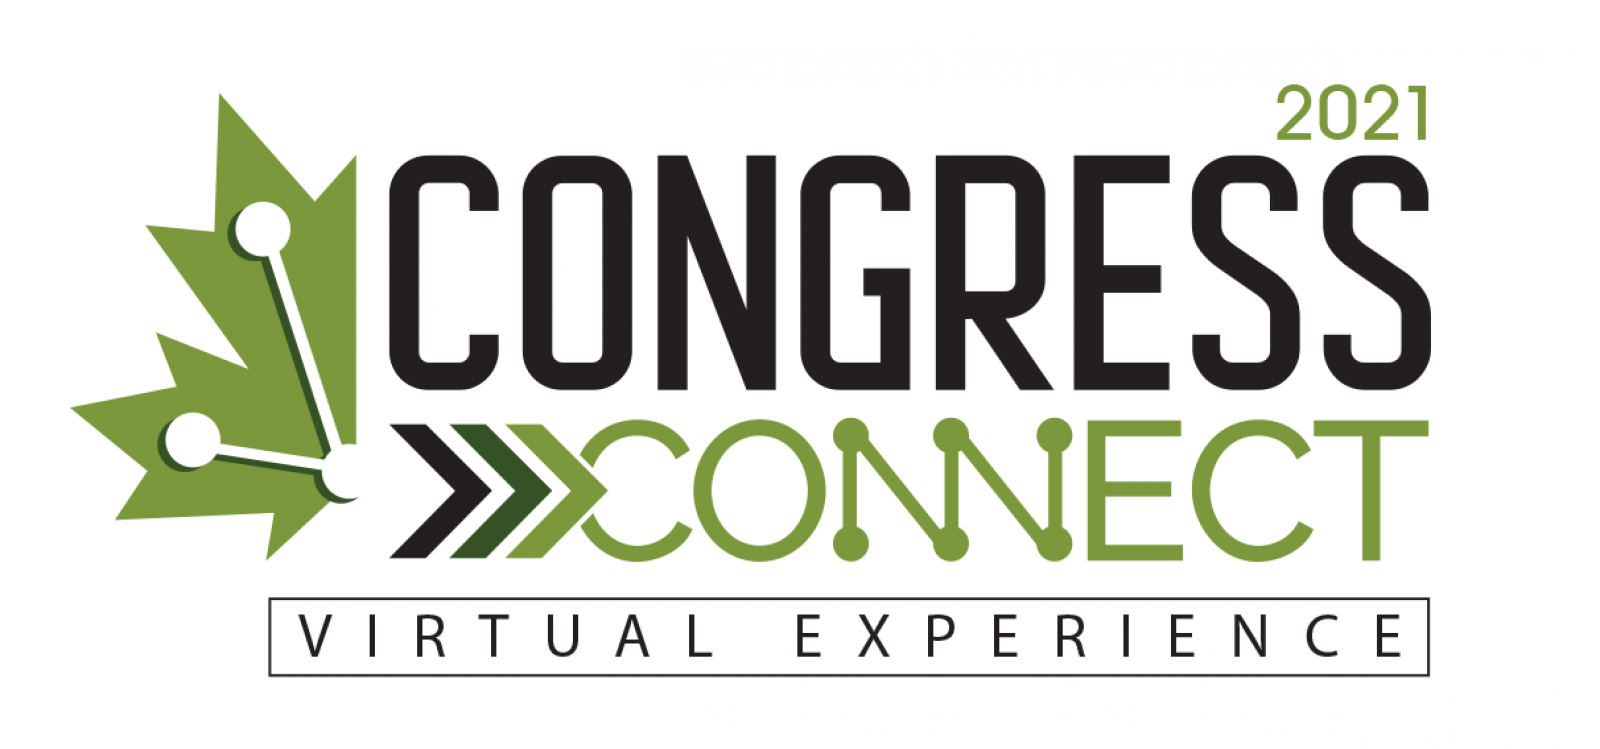 Congress Connect is a year-long experience